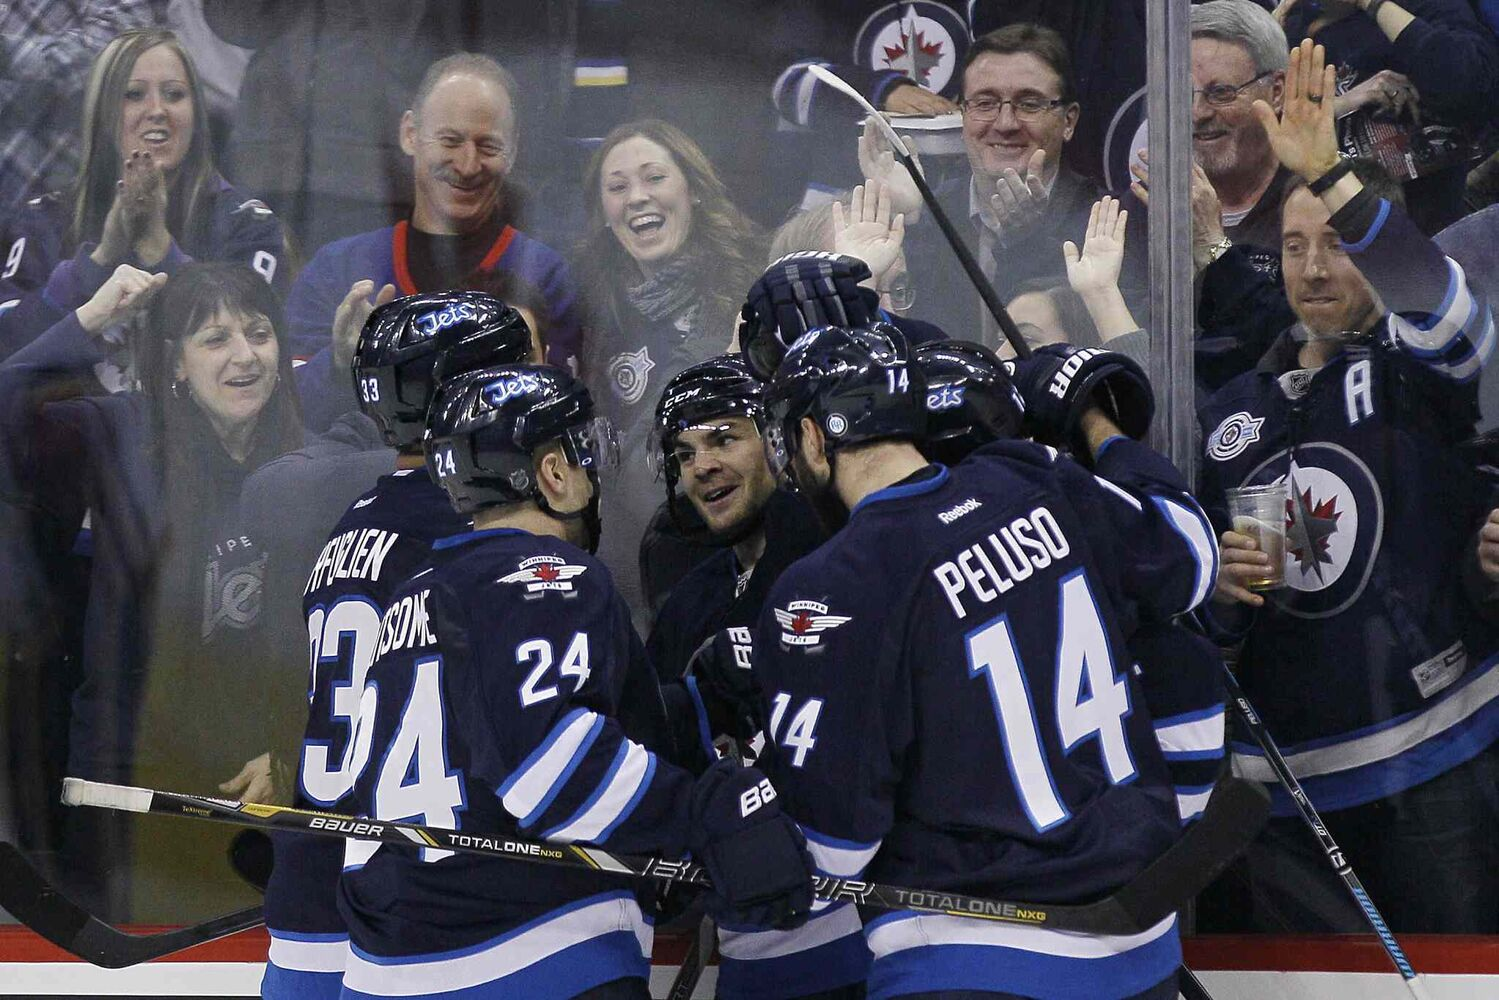 Winnipeg Jets' Dustin Byfuglien (33), Grant Clitsome (24), Michael Frolik (67), Olli Jokinen (12) and Anthony Peluso (14) celebrate Frolik's goal against the Calgary Flames during second period NHL action in Winnipeg on Monday, Nov. 18, 2013.